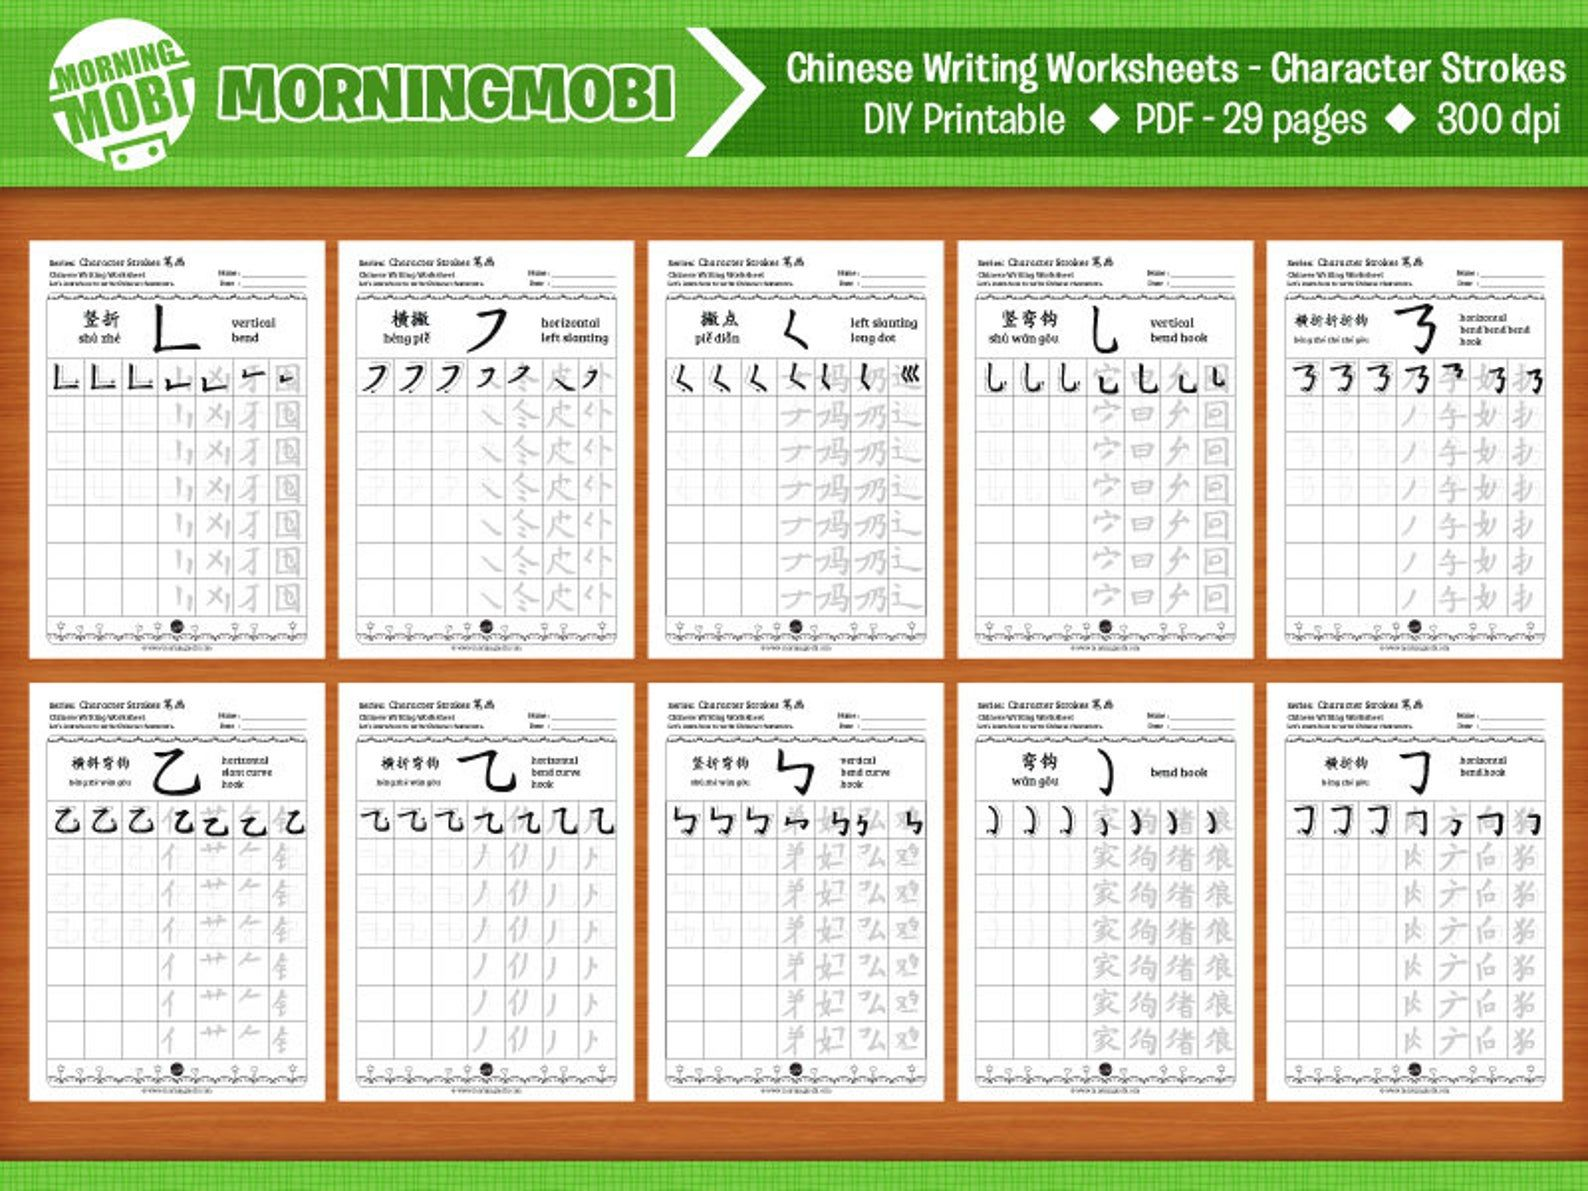 Chinese Character Strokes Chinese Writing Worksheets 29